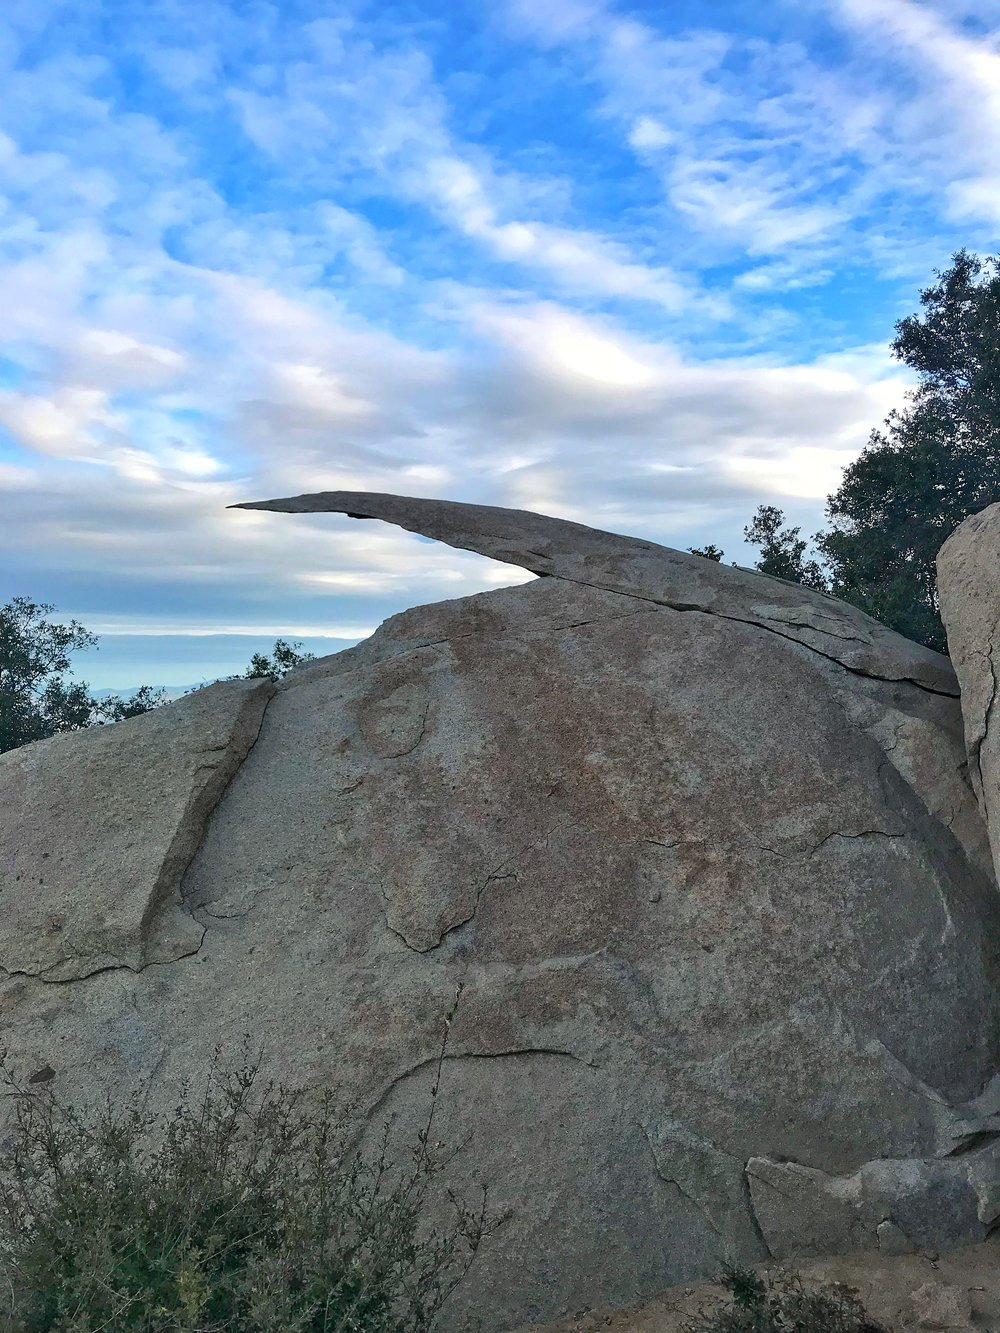 To avoid crowds on Potato Chip Rock, go at dawn on a weekday.